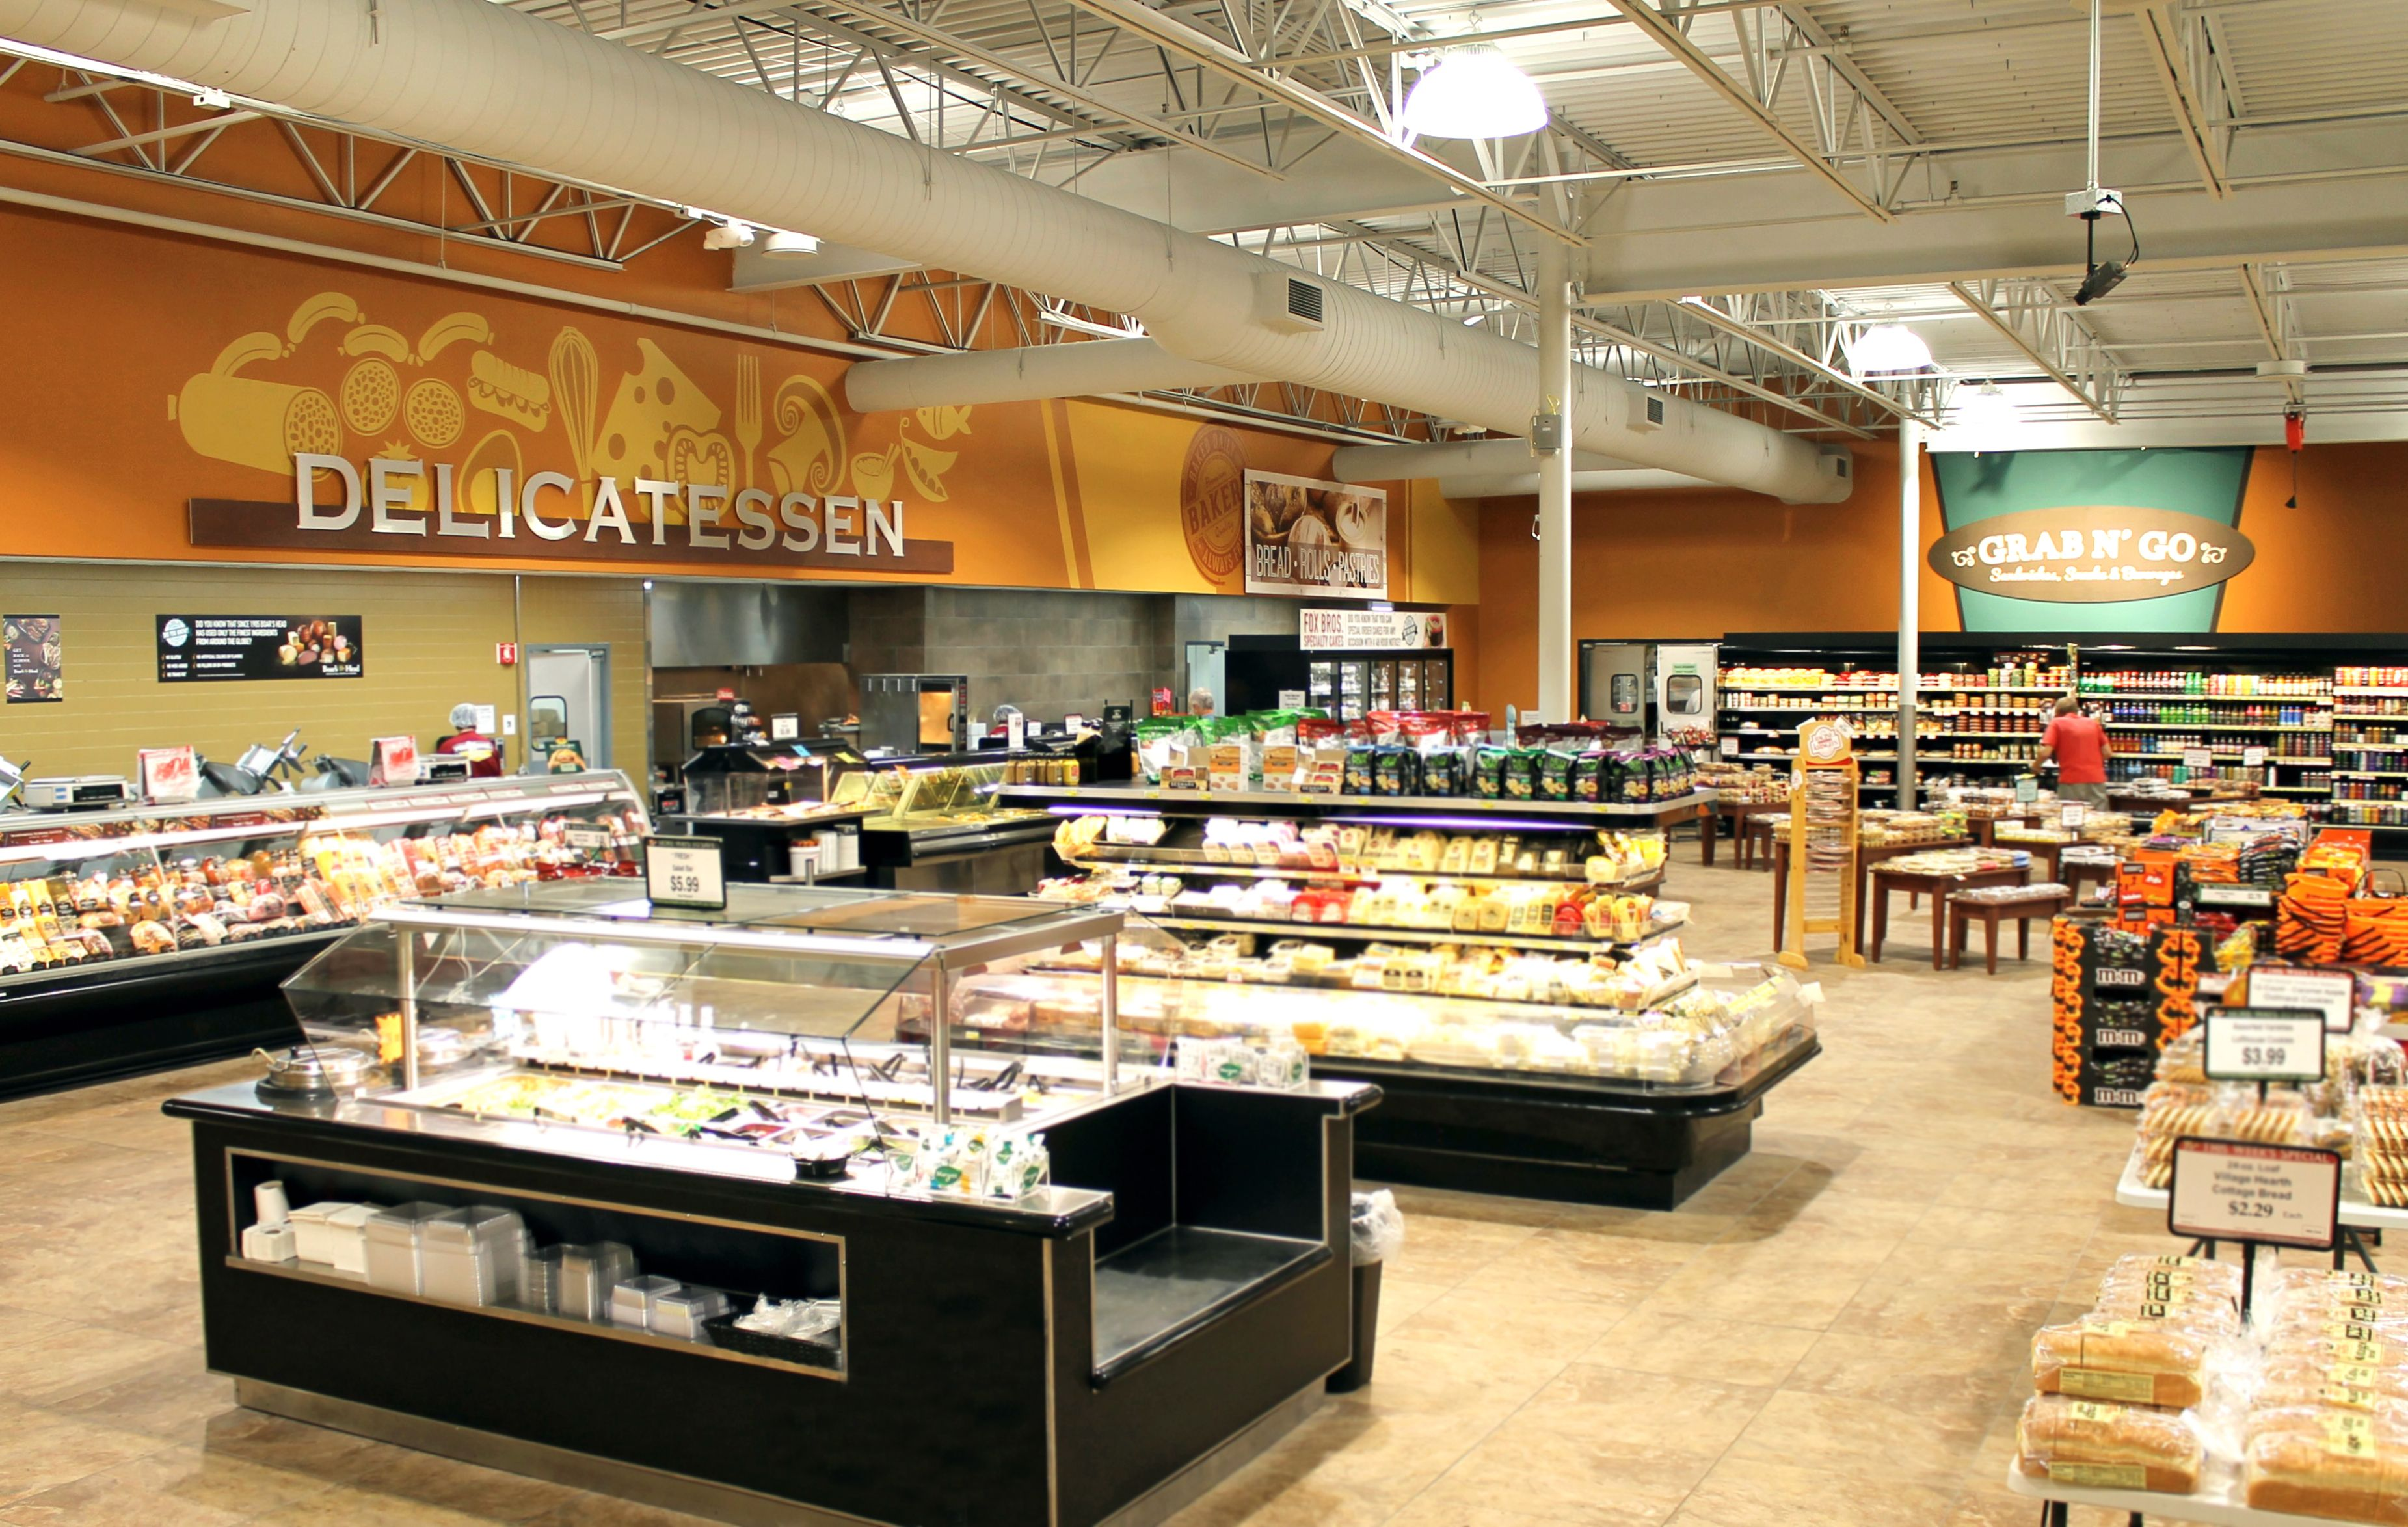 Our grocery store decor design in the deli and bakery area